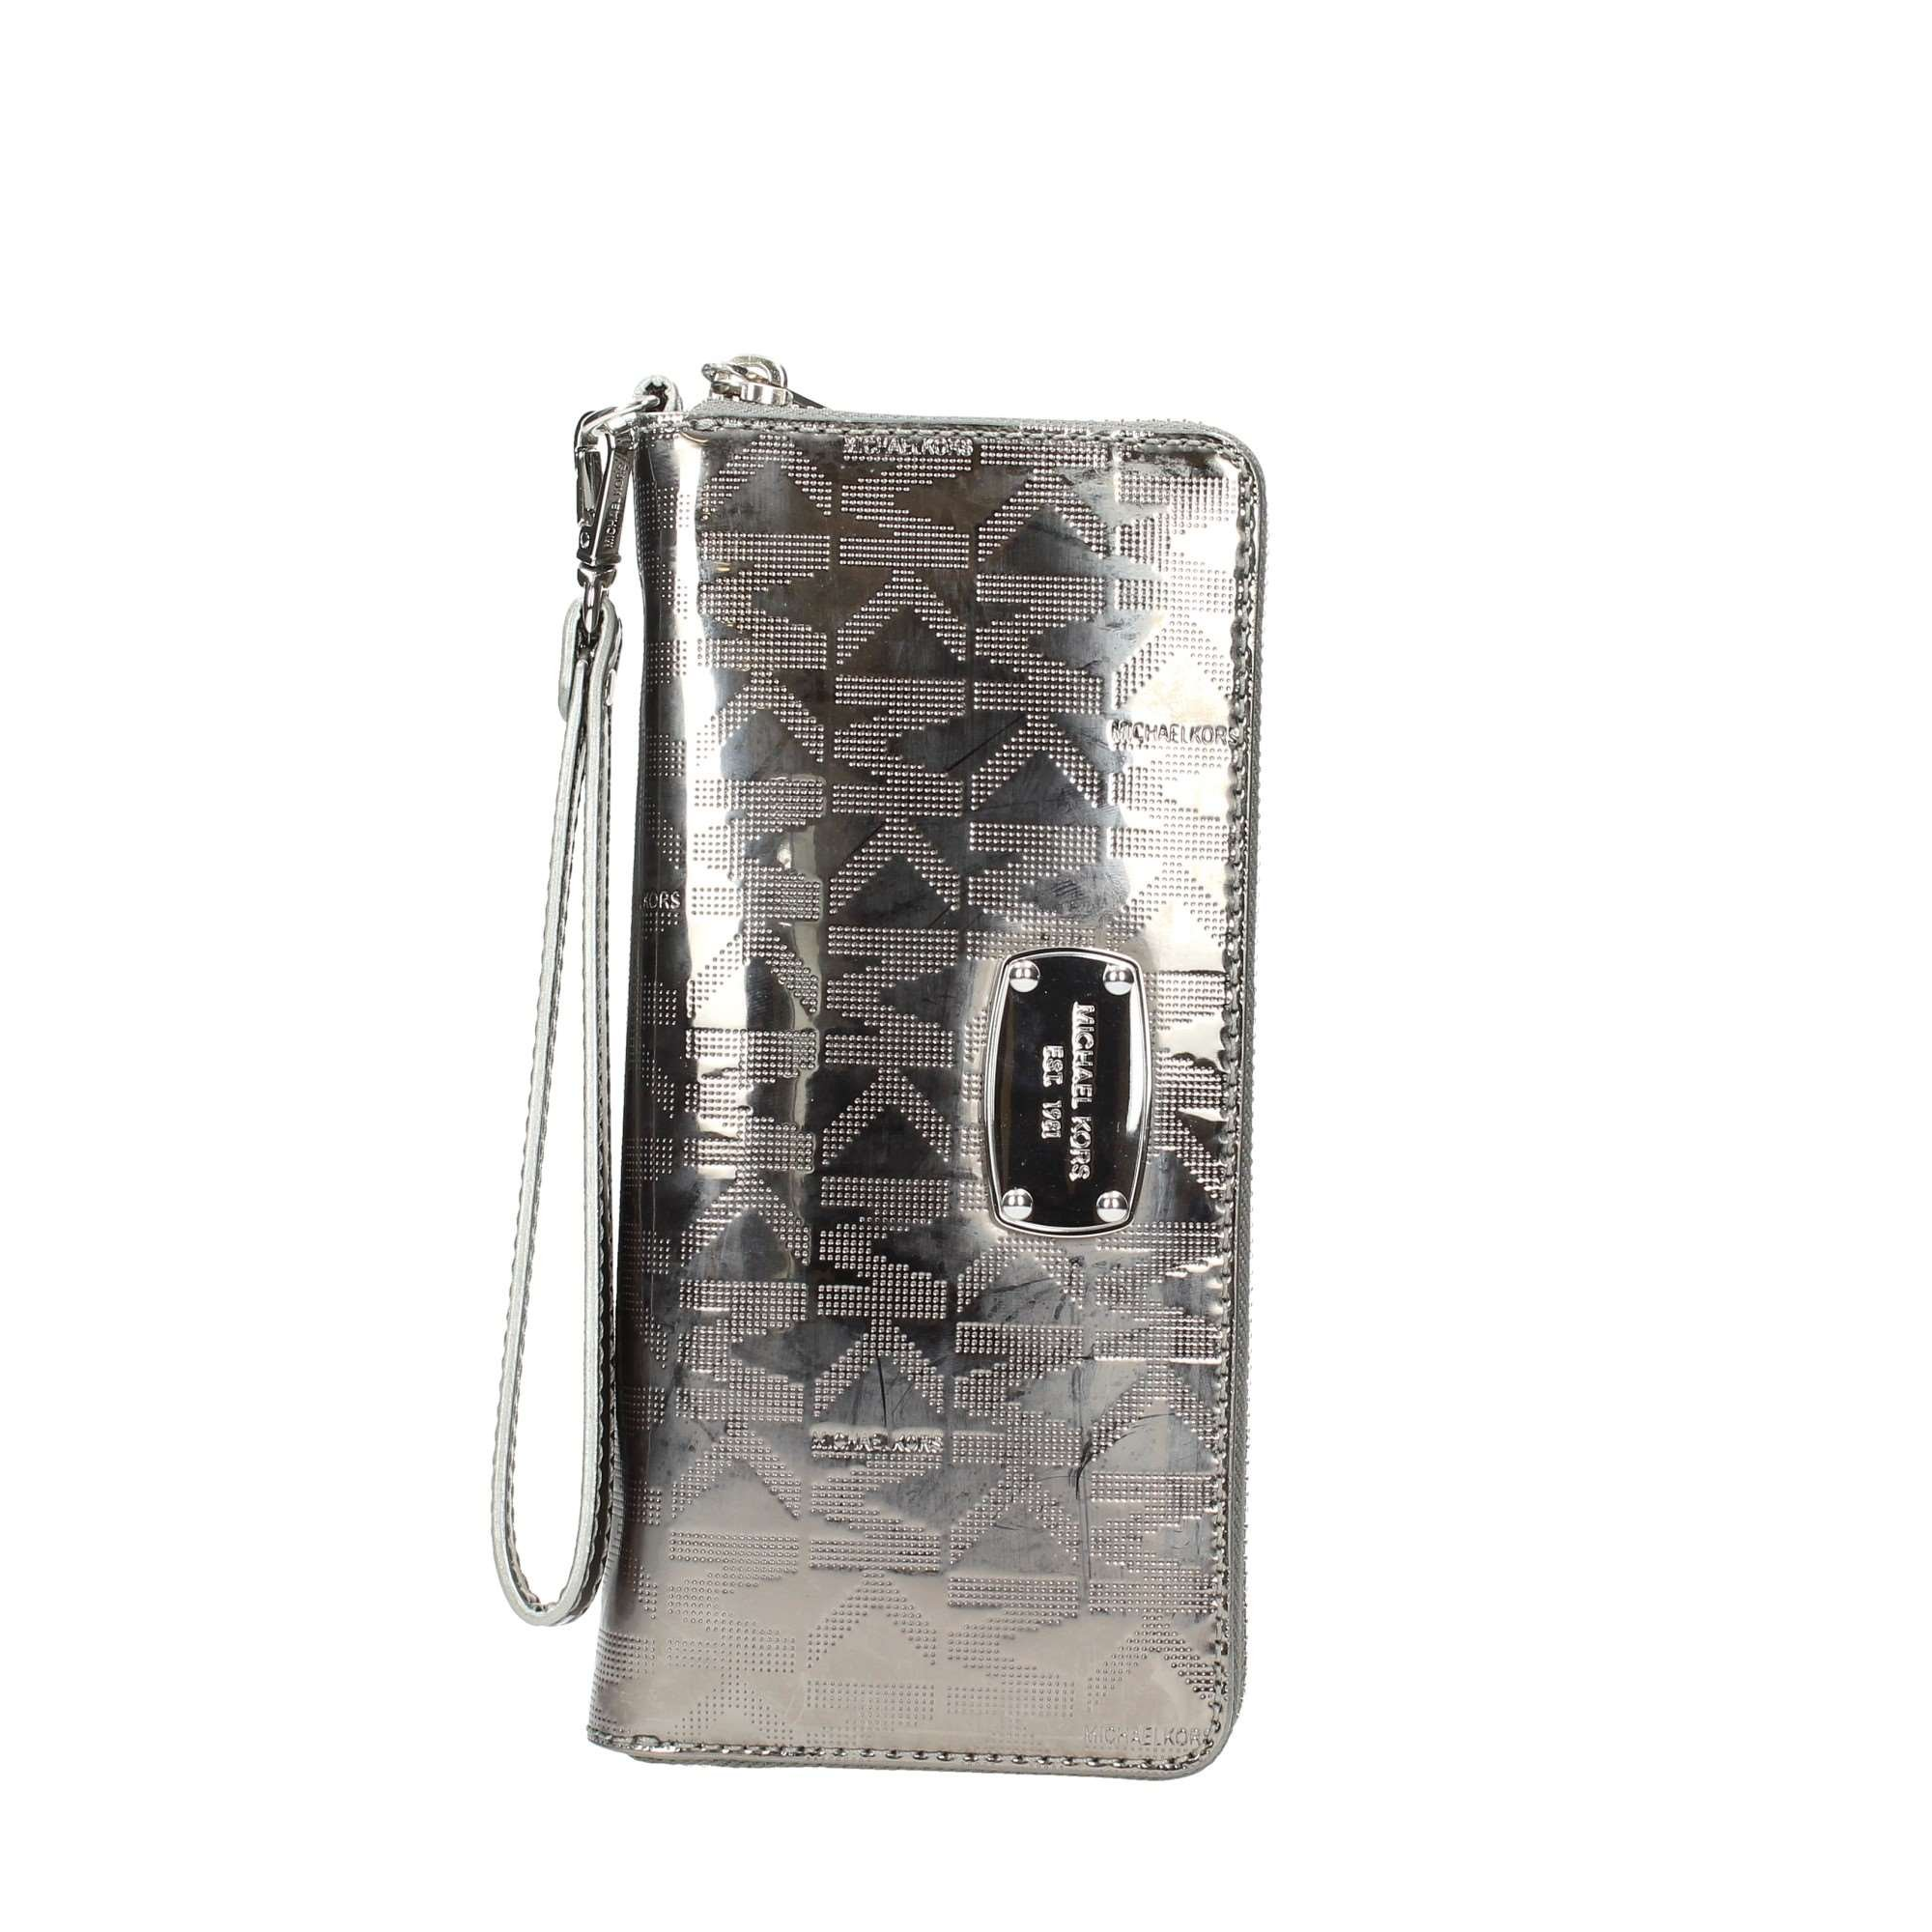 Michael Kors Jet Set Travel Continental ZA Wallet 35S6MJSZ7Z Mirror Nickel by Michael Kors